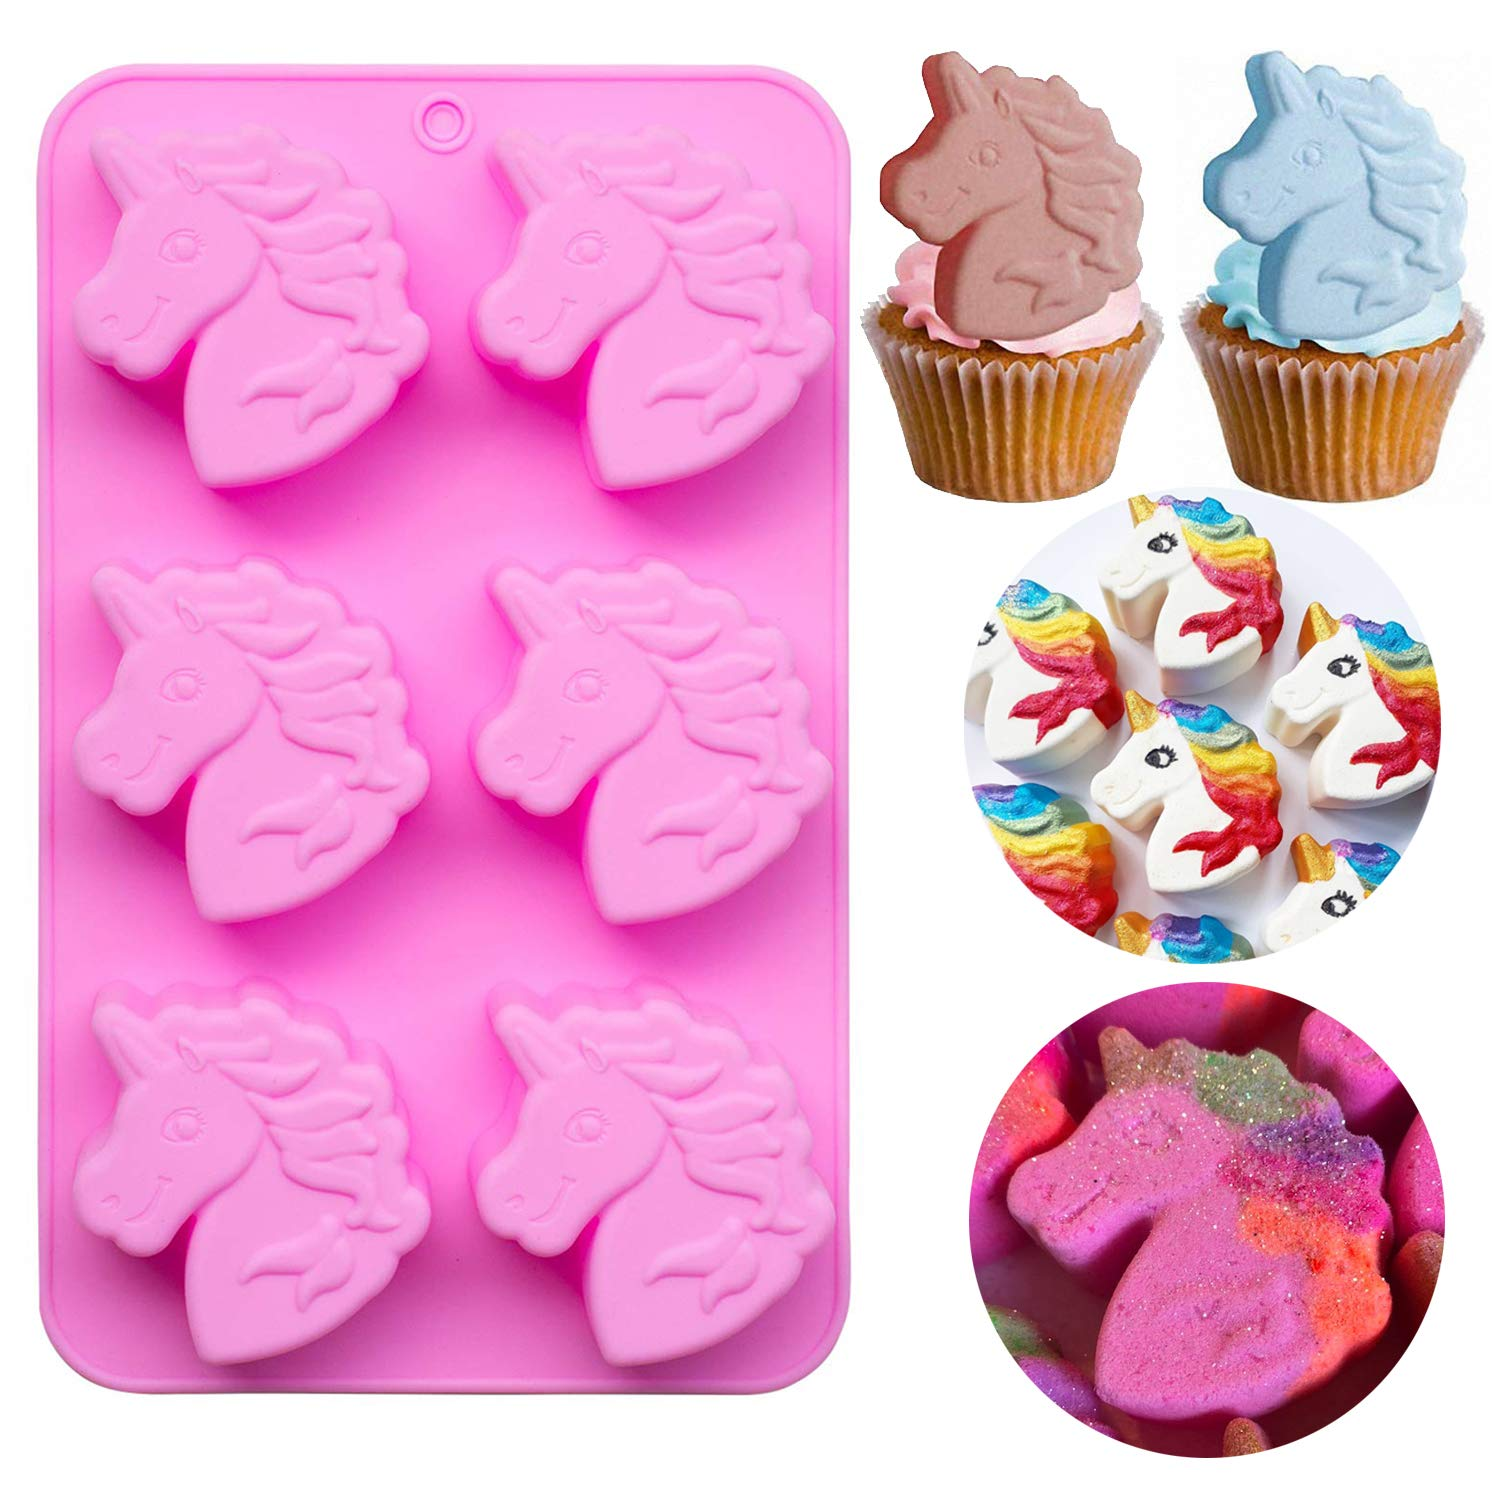 Fewo 6 Cavities Unicorn Head Cupcake Mold, Non-stick Unicorn Shaped Silicone Mould for Party Cakes Soaps Bath Bombs Jello Shots Kids' Baking Supplies